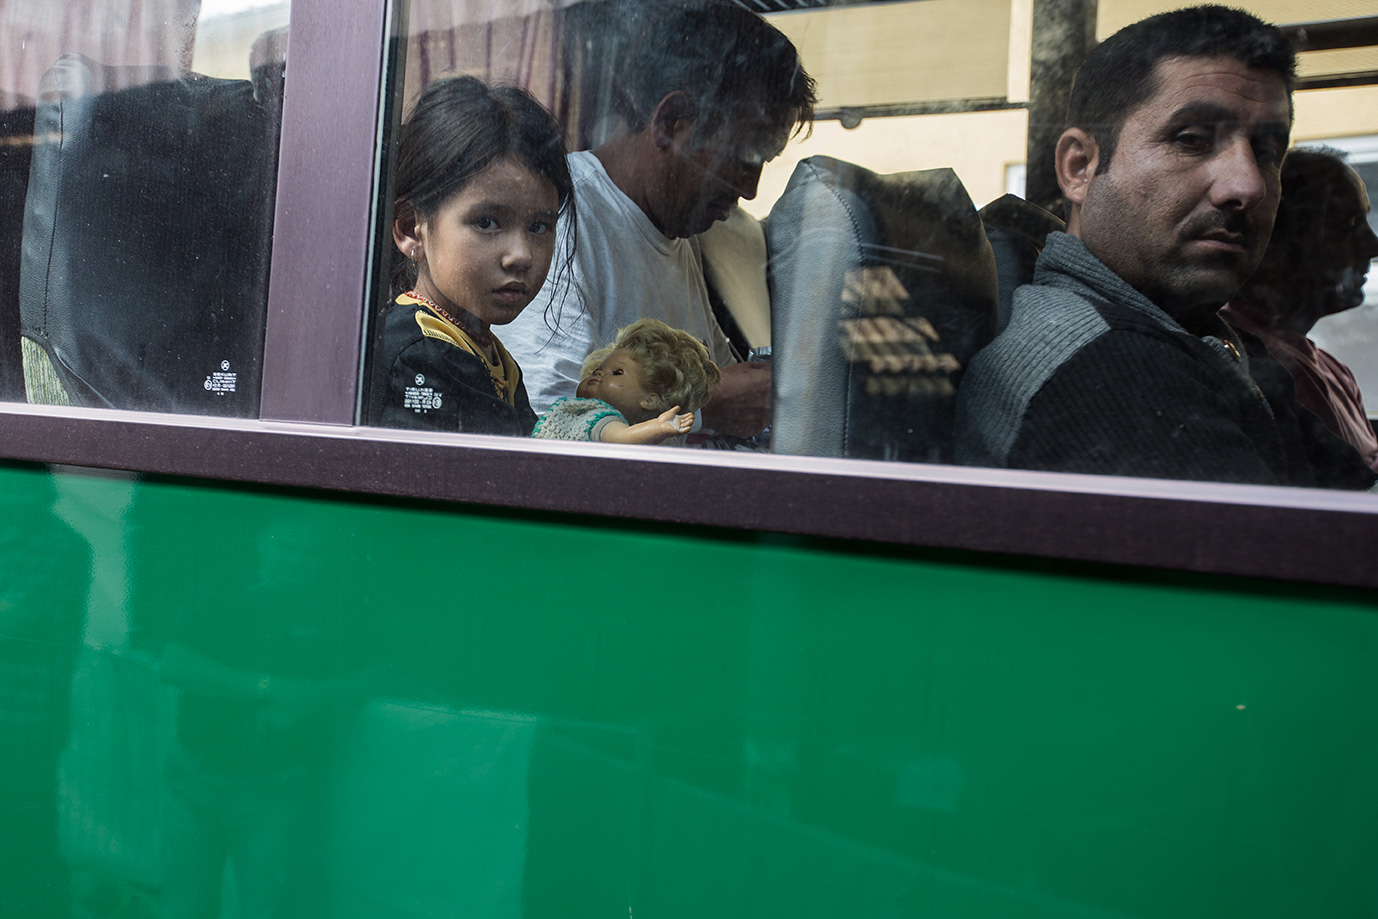 12_young-girl-afghanistan-puppet-police-bus-Germany